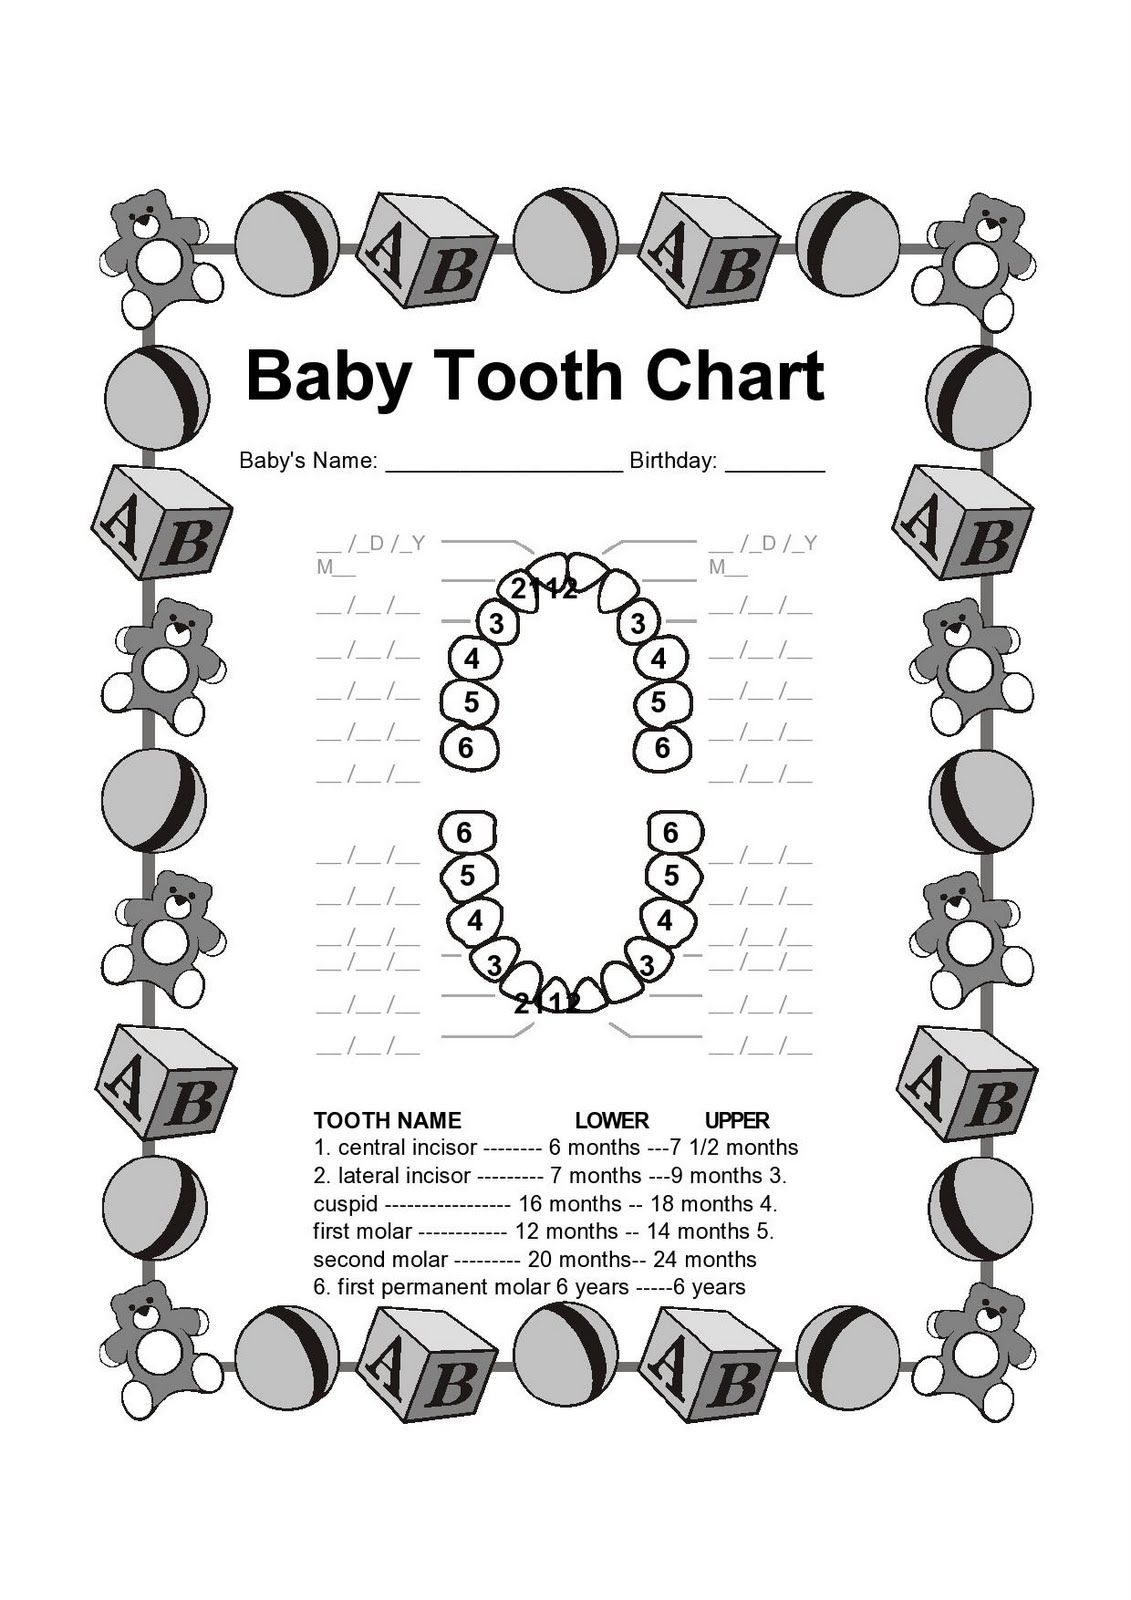 Teeth Coloring Pages Baby Tooth Charts Printable Teeth Free Order